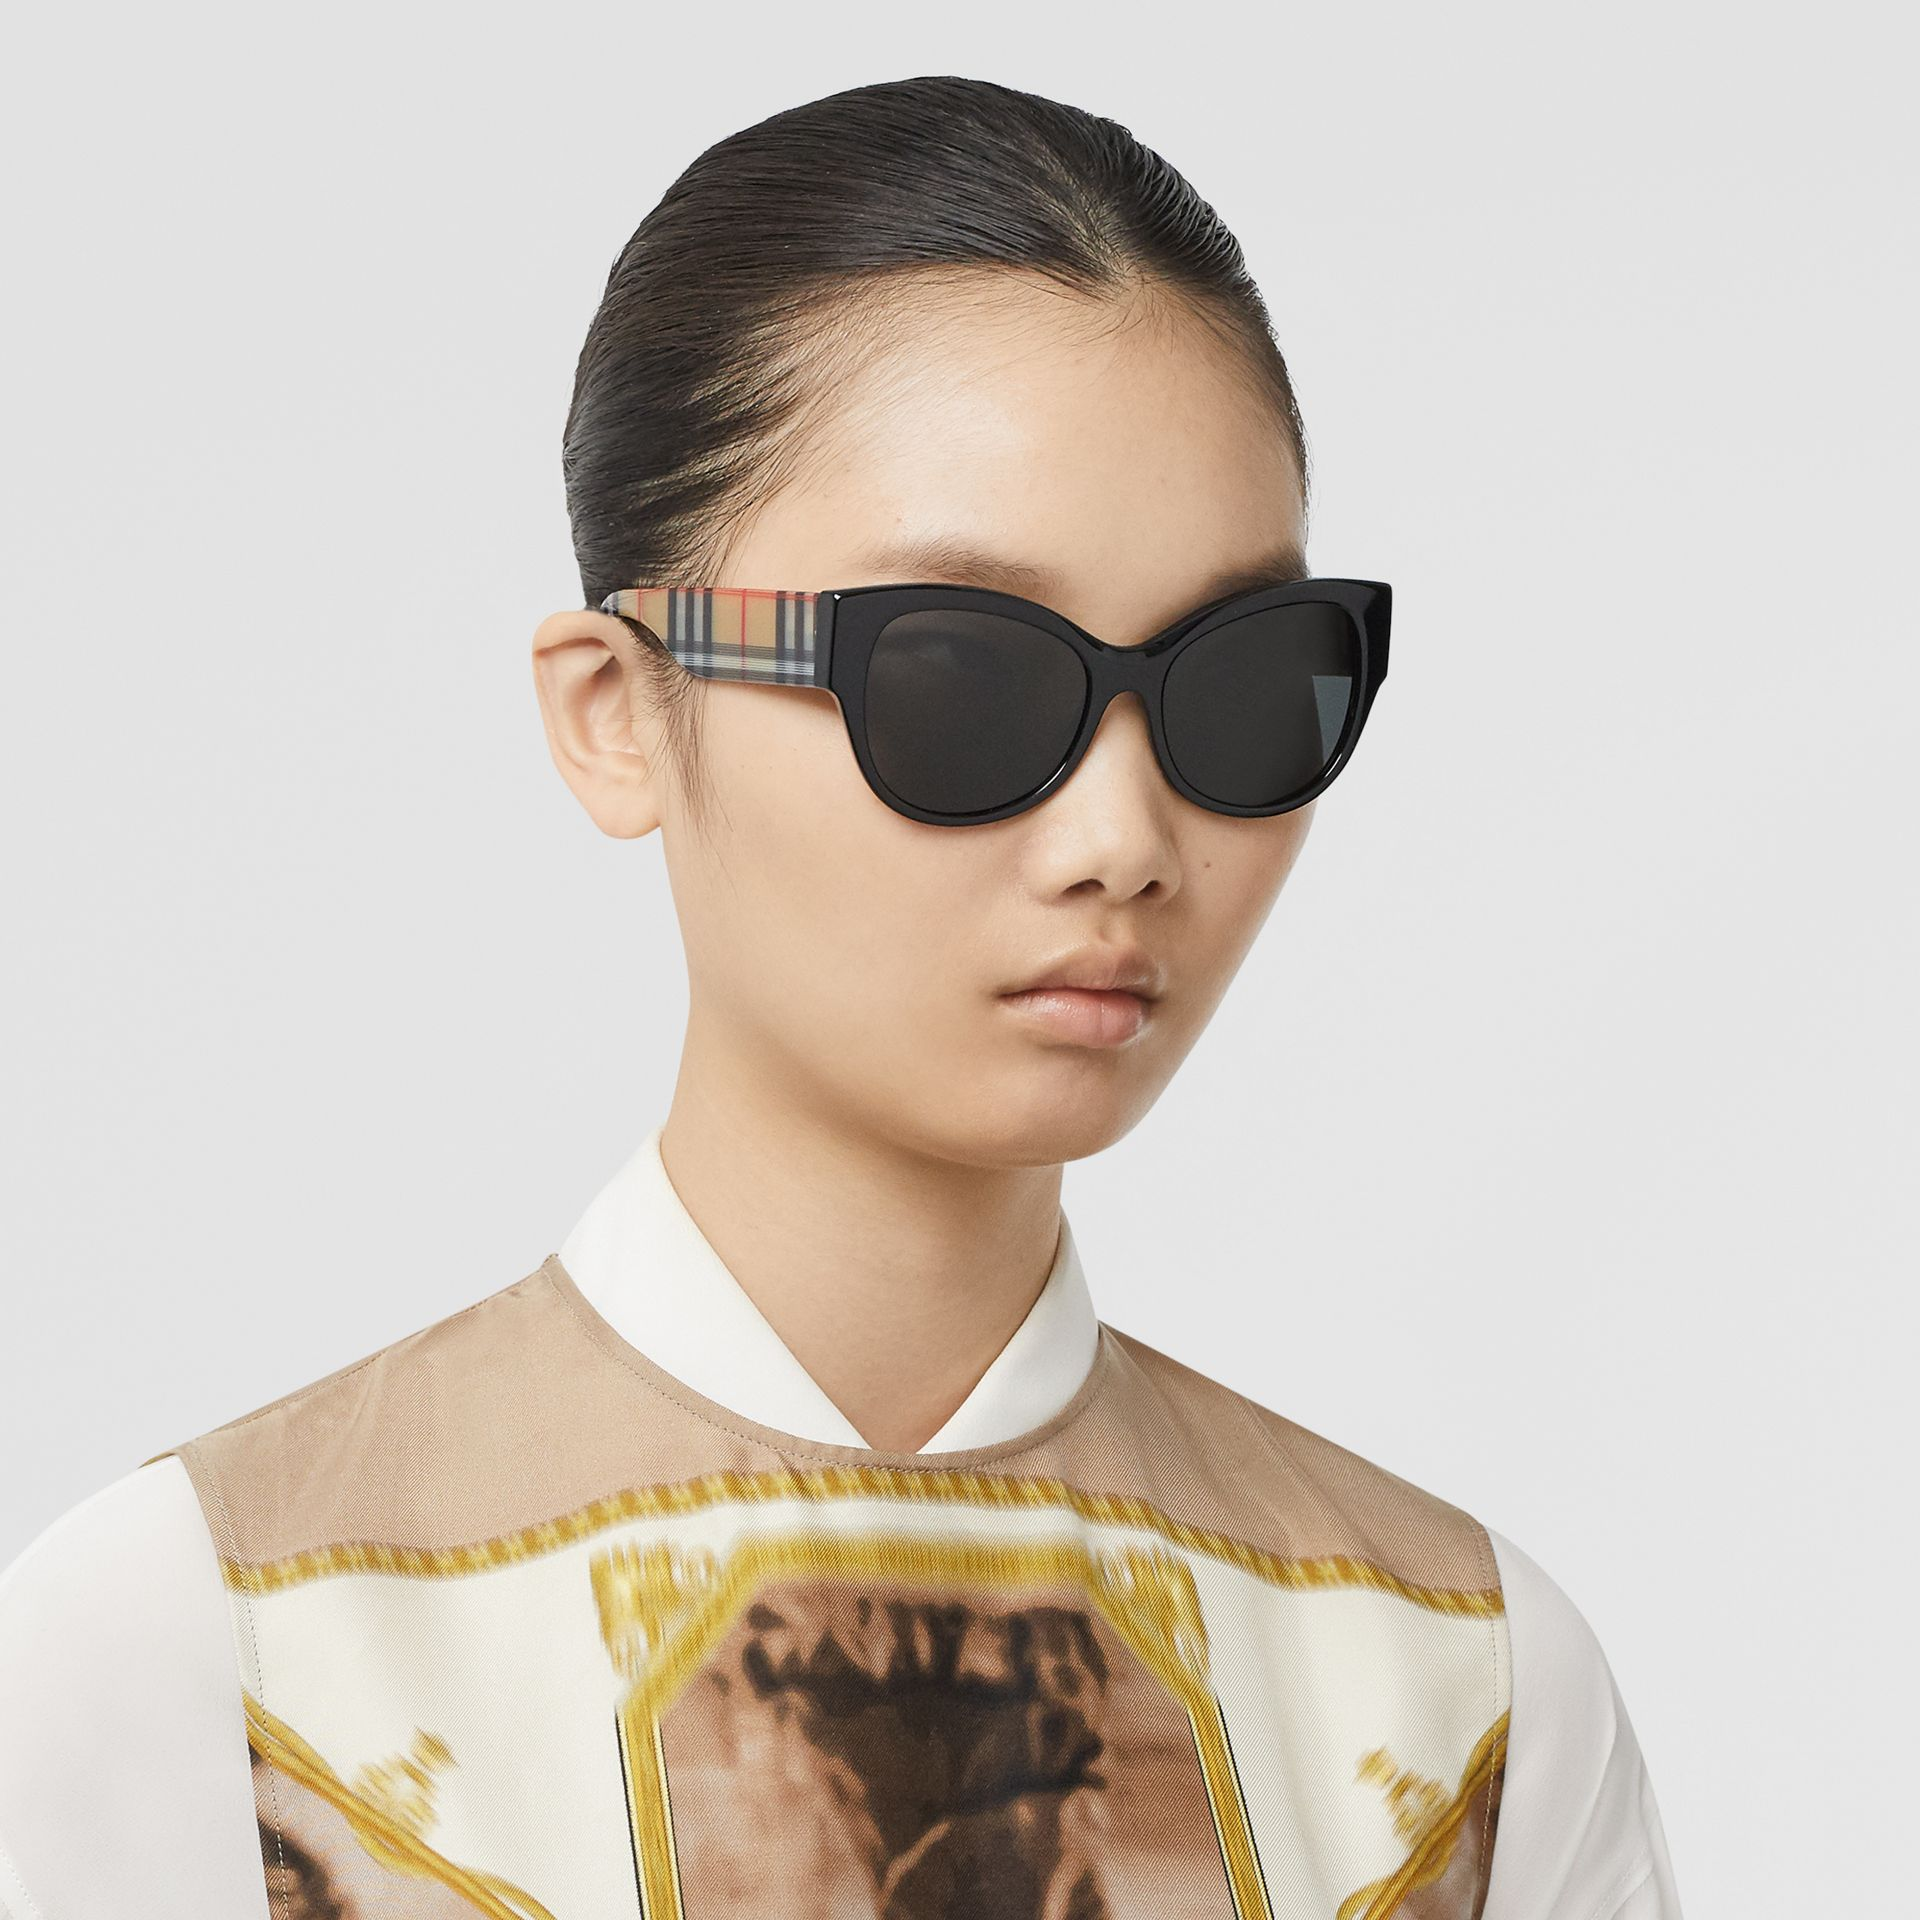 Vintage Check Detail Butterfly Frame Sunglasses in Black / Beige - Women | Burberry - gallery image 2